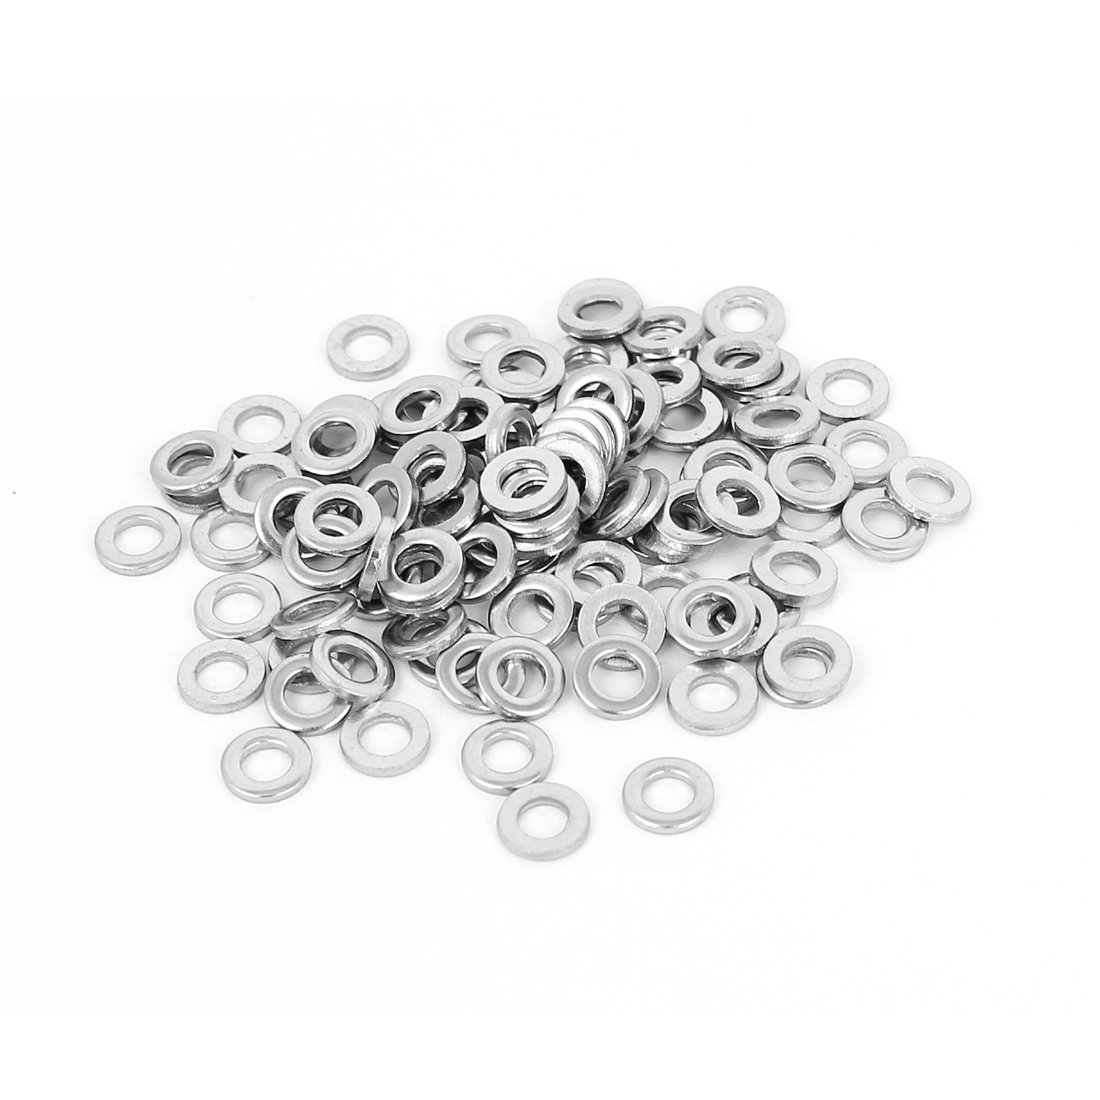 100Pcs M3x6mmx1mm Stainless Steel Metric Round Flat Washer for Bolt Screw